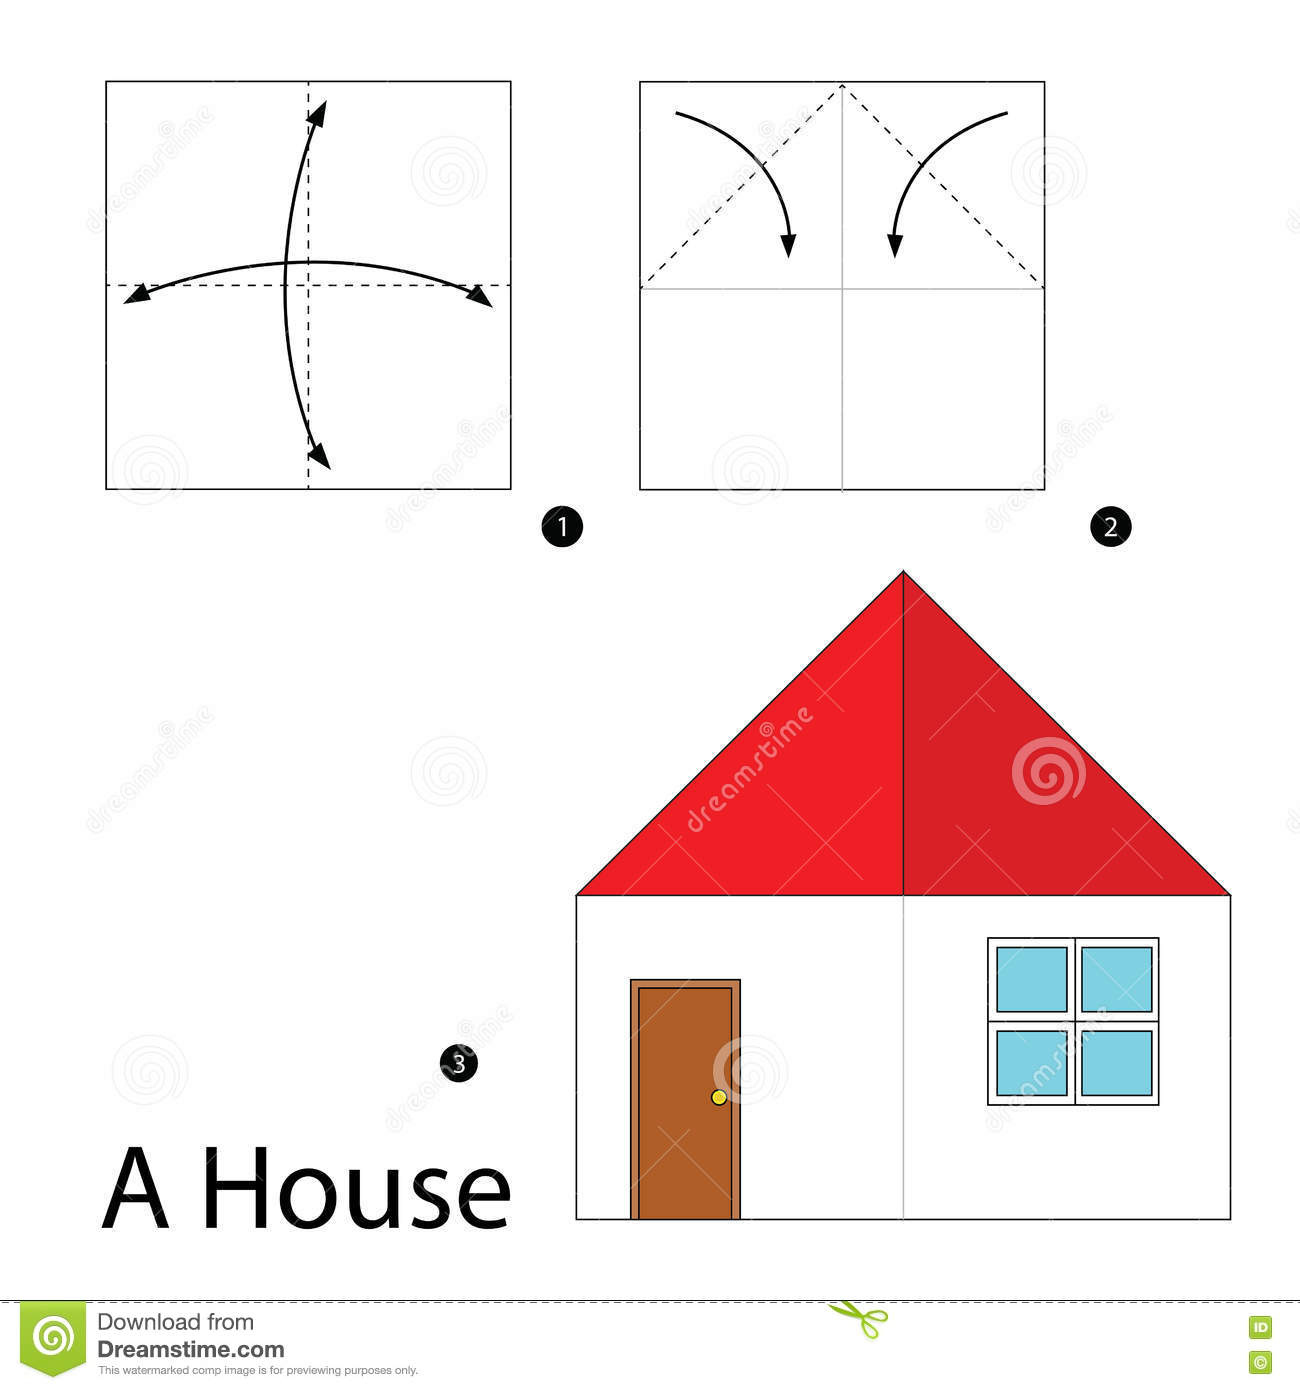 Origami house comot Step by step to build a house